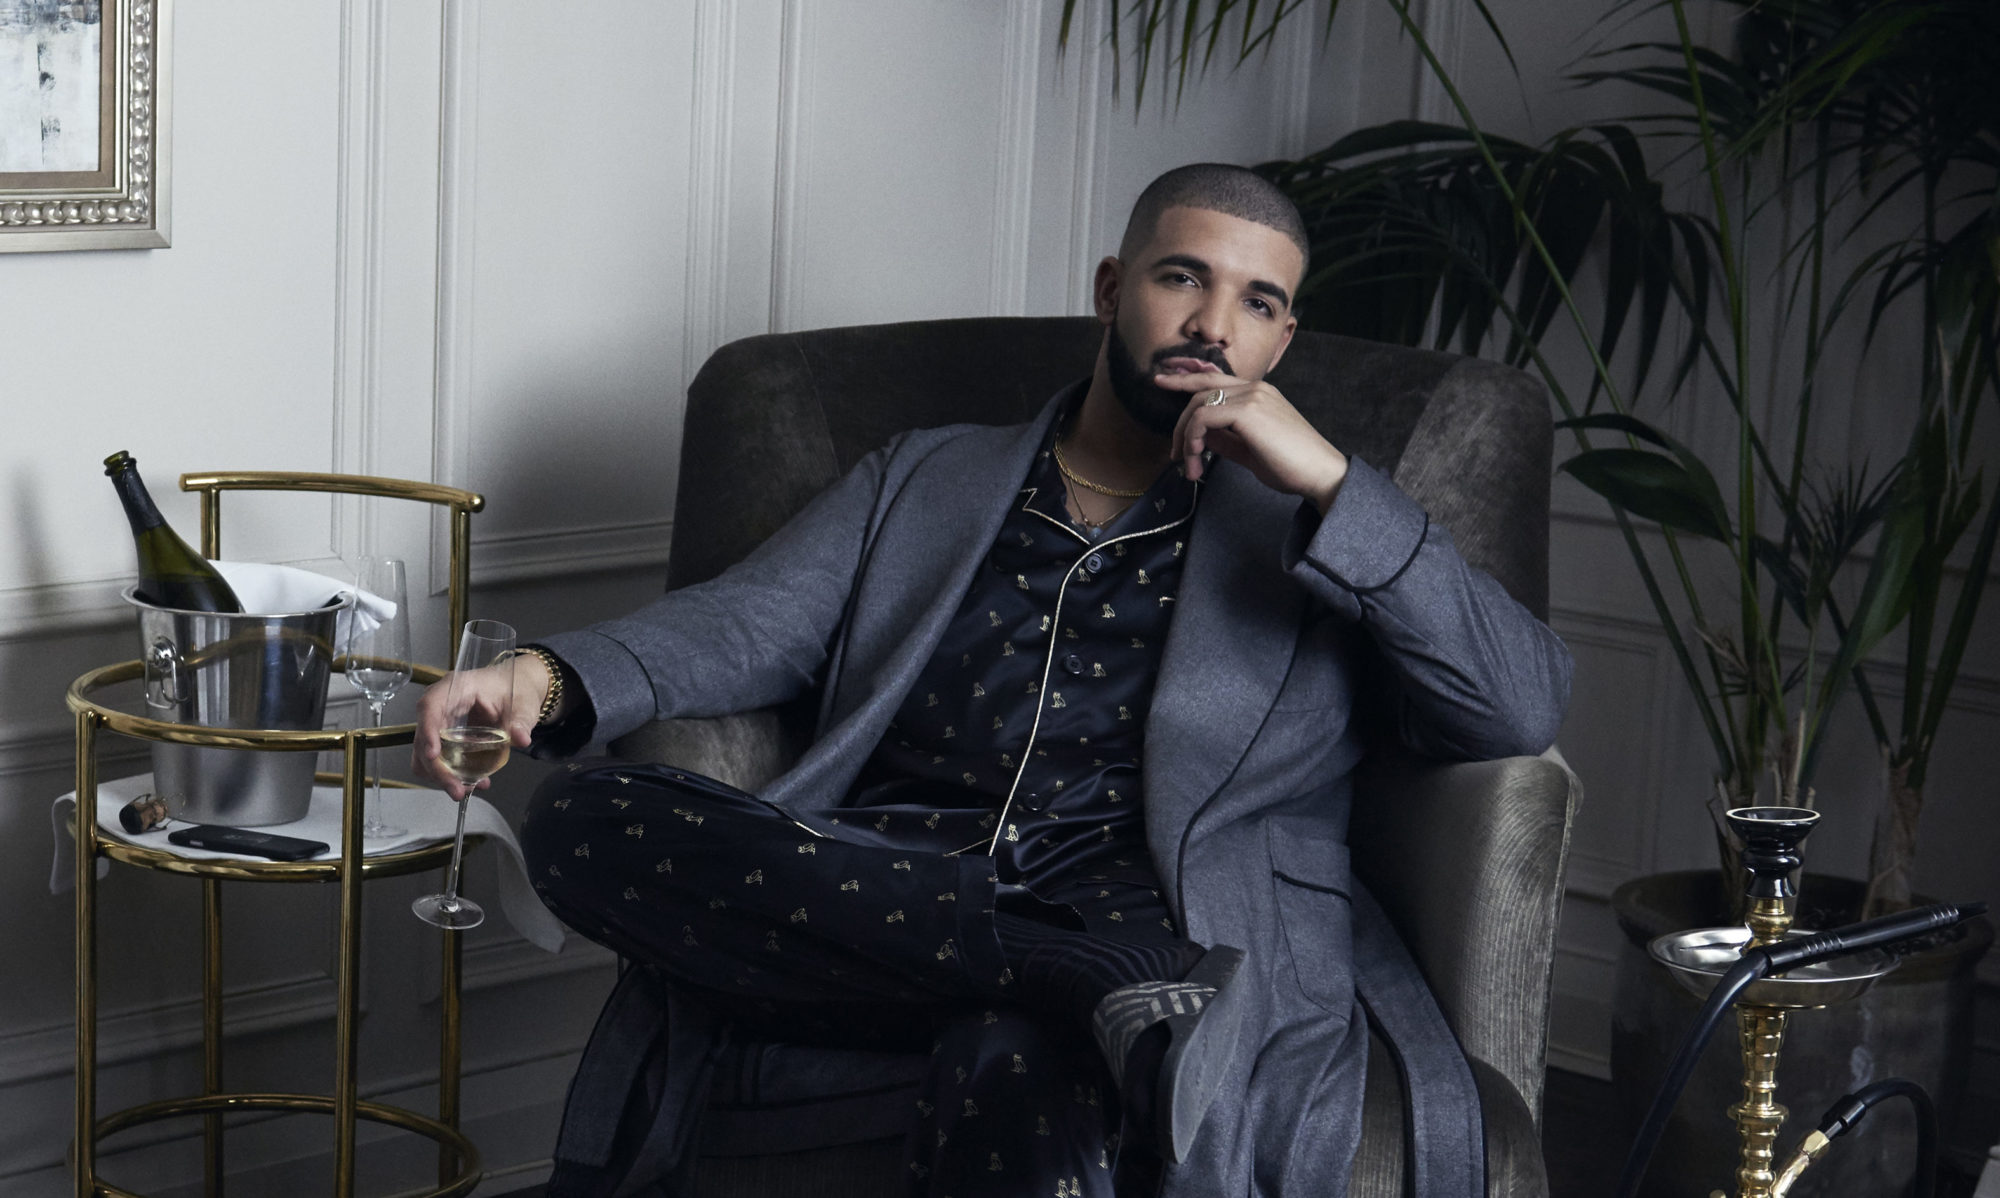 Drake Assassination Vacation Tour UK 2019 - Get your tickets